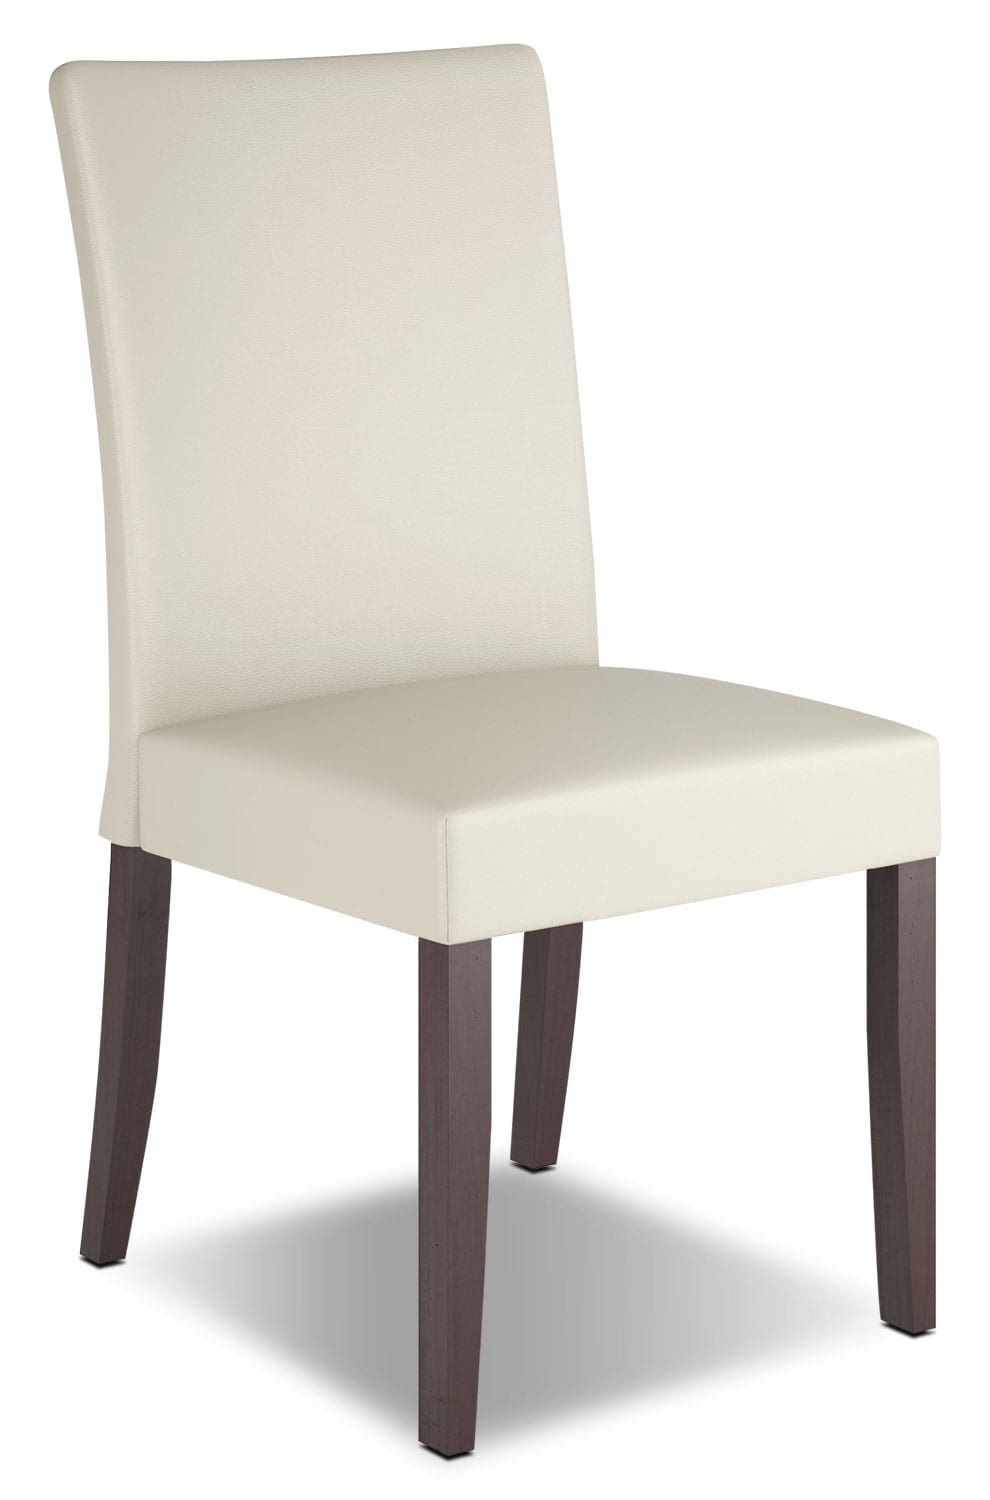 Atwood Faux Leather Dining Chair - Cream